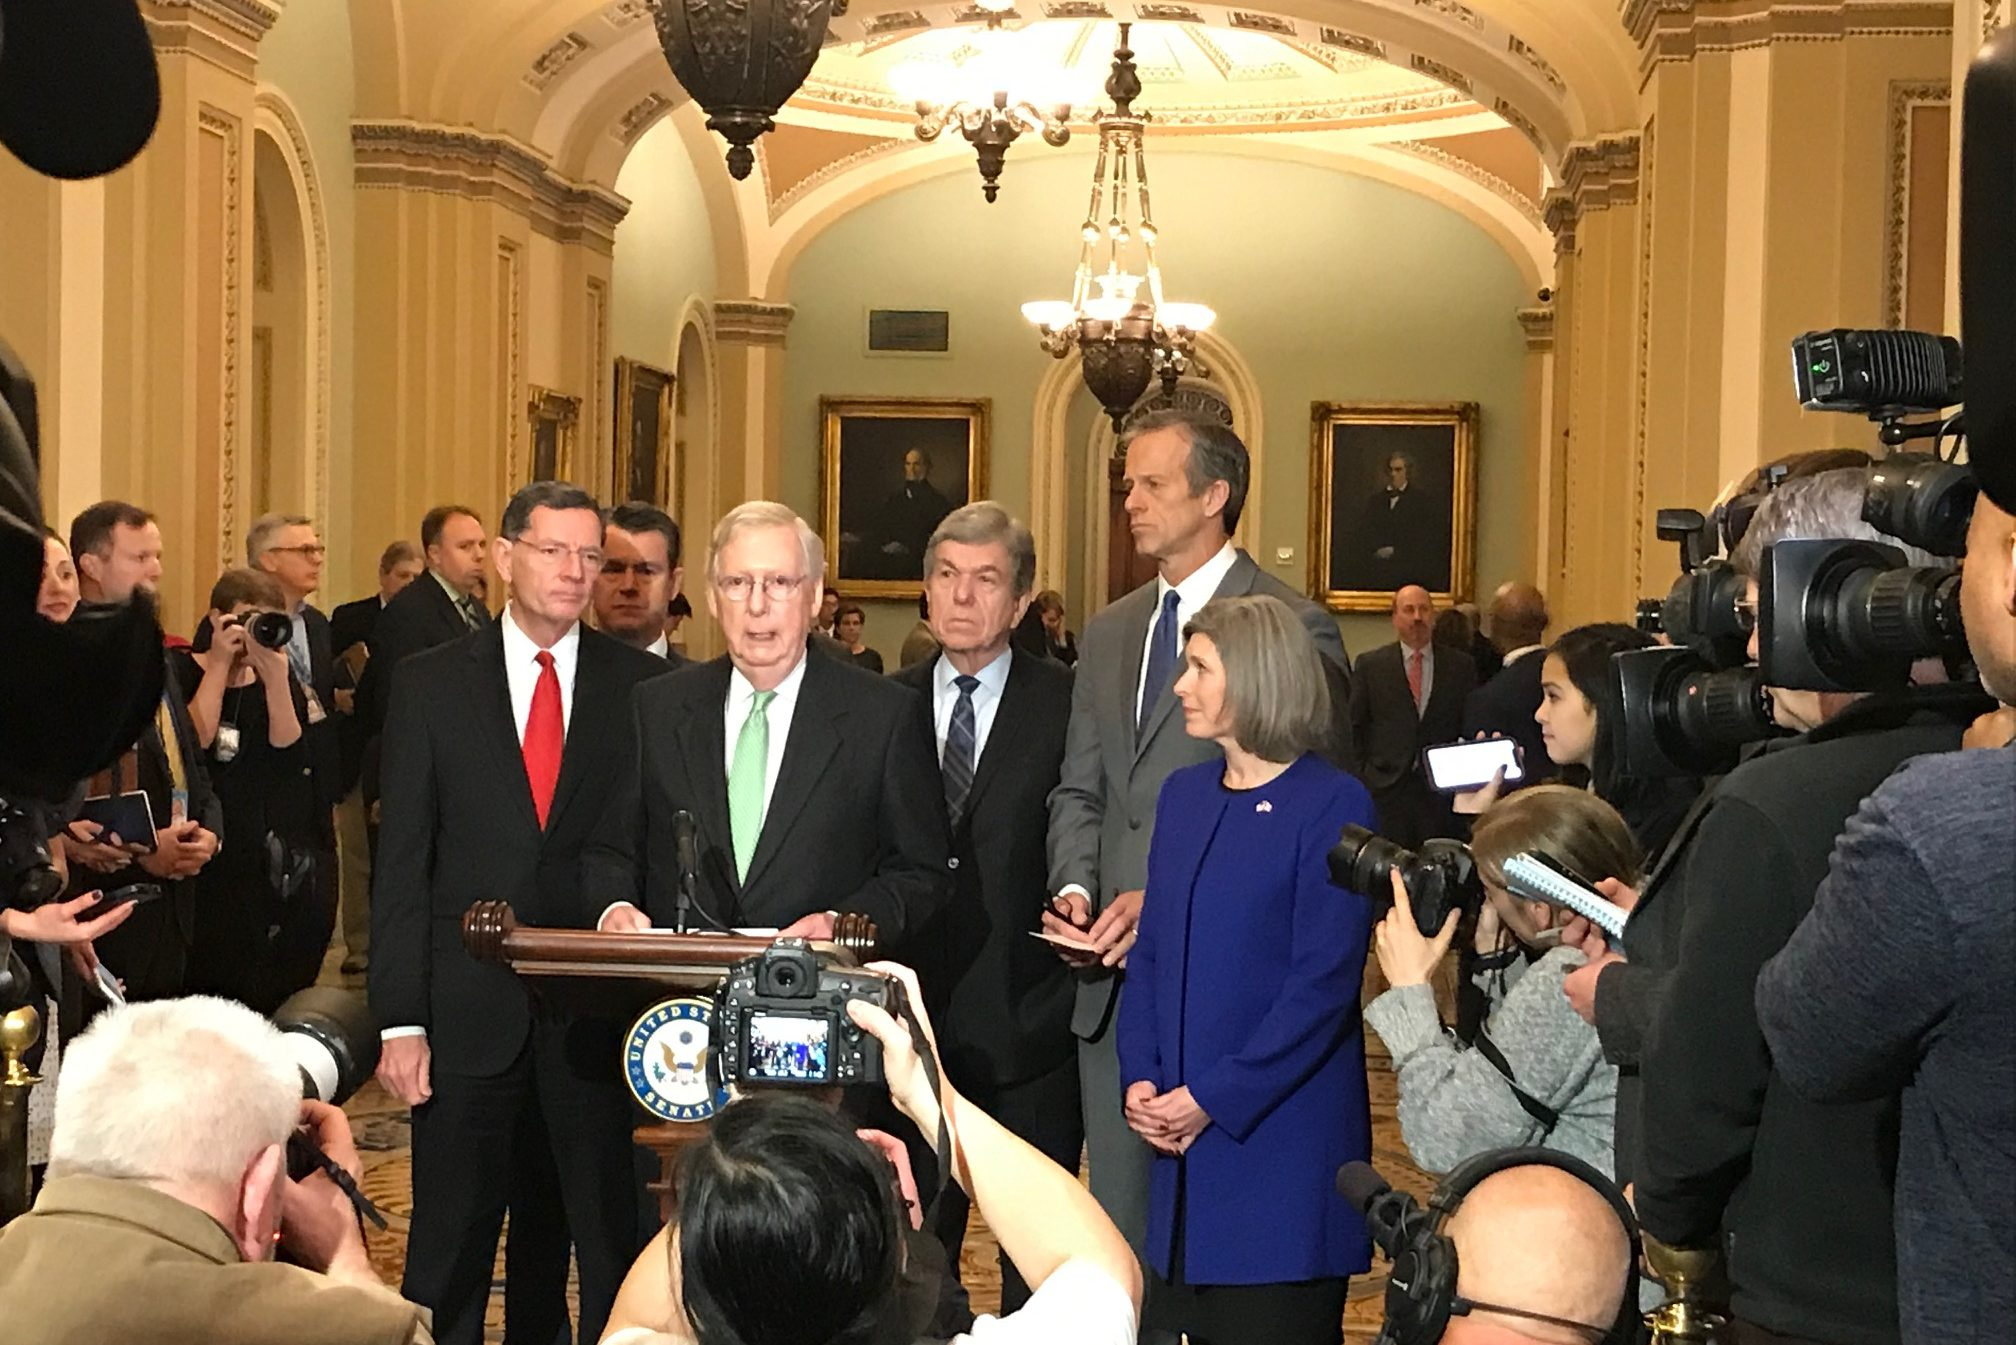 Senate Majority Leader Mitch McConnell and Republican leaders talk about passage of the spending package and the National Defense Authorization Act at an end of year press event.